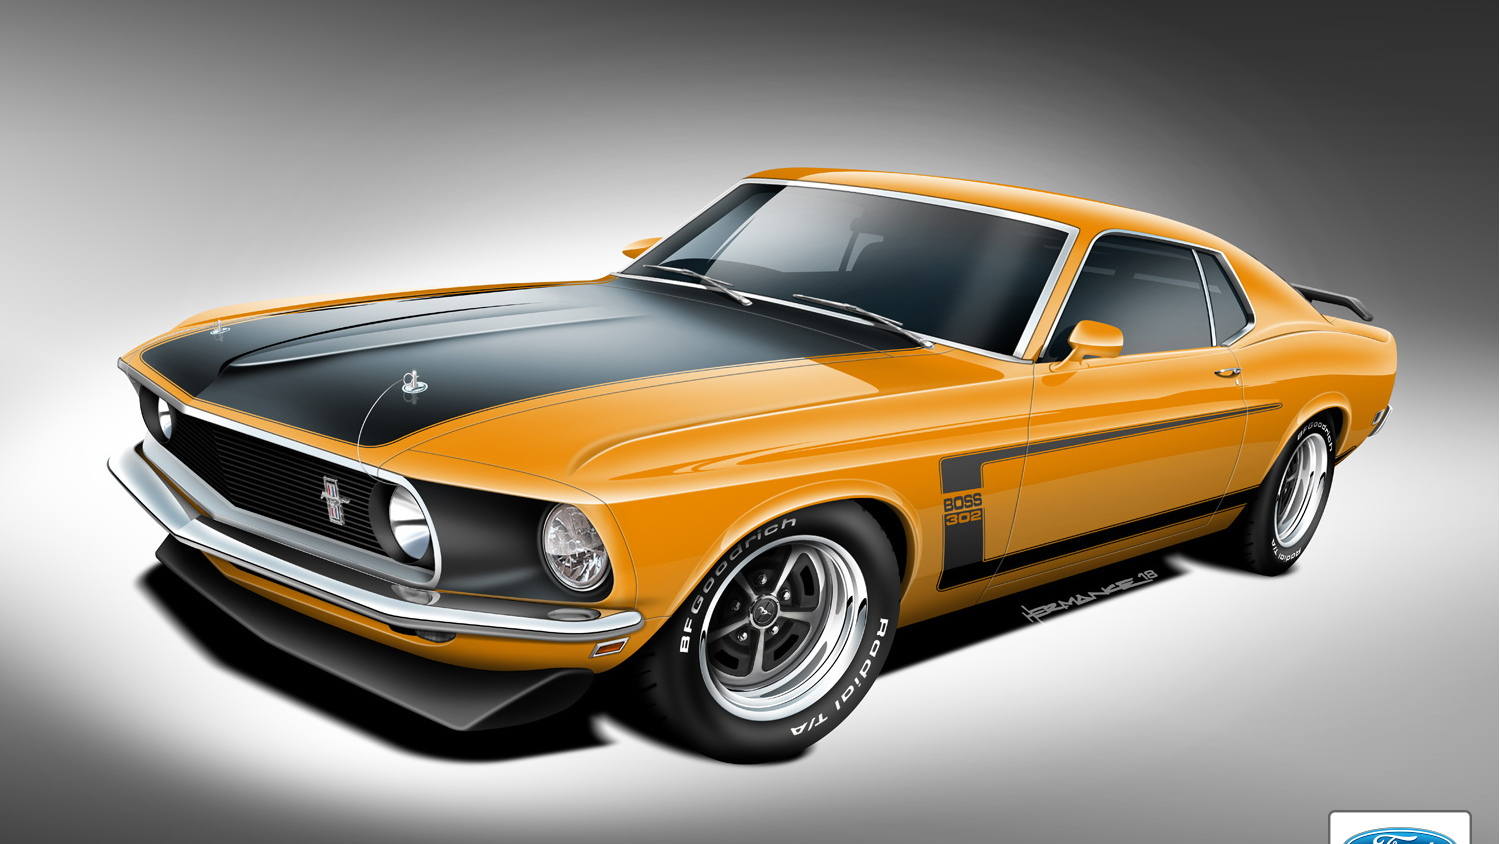 Teaser sketch for Classic Recreations 1969-1970 Ford Mustang Boss 302